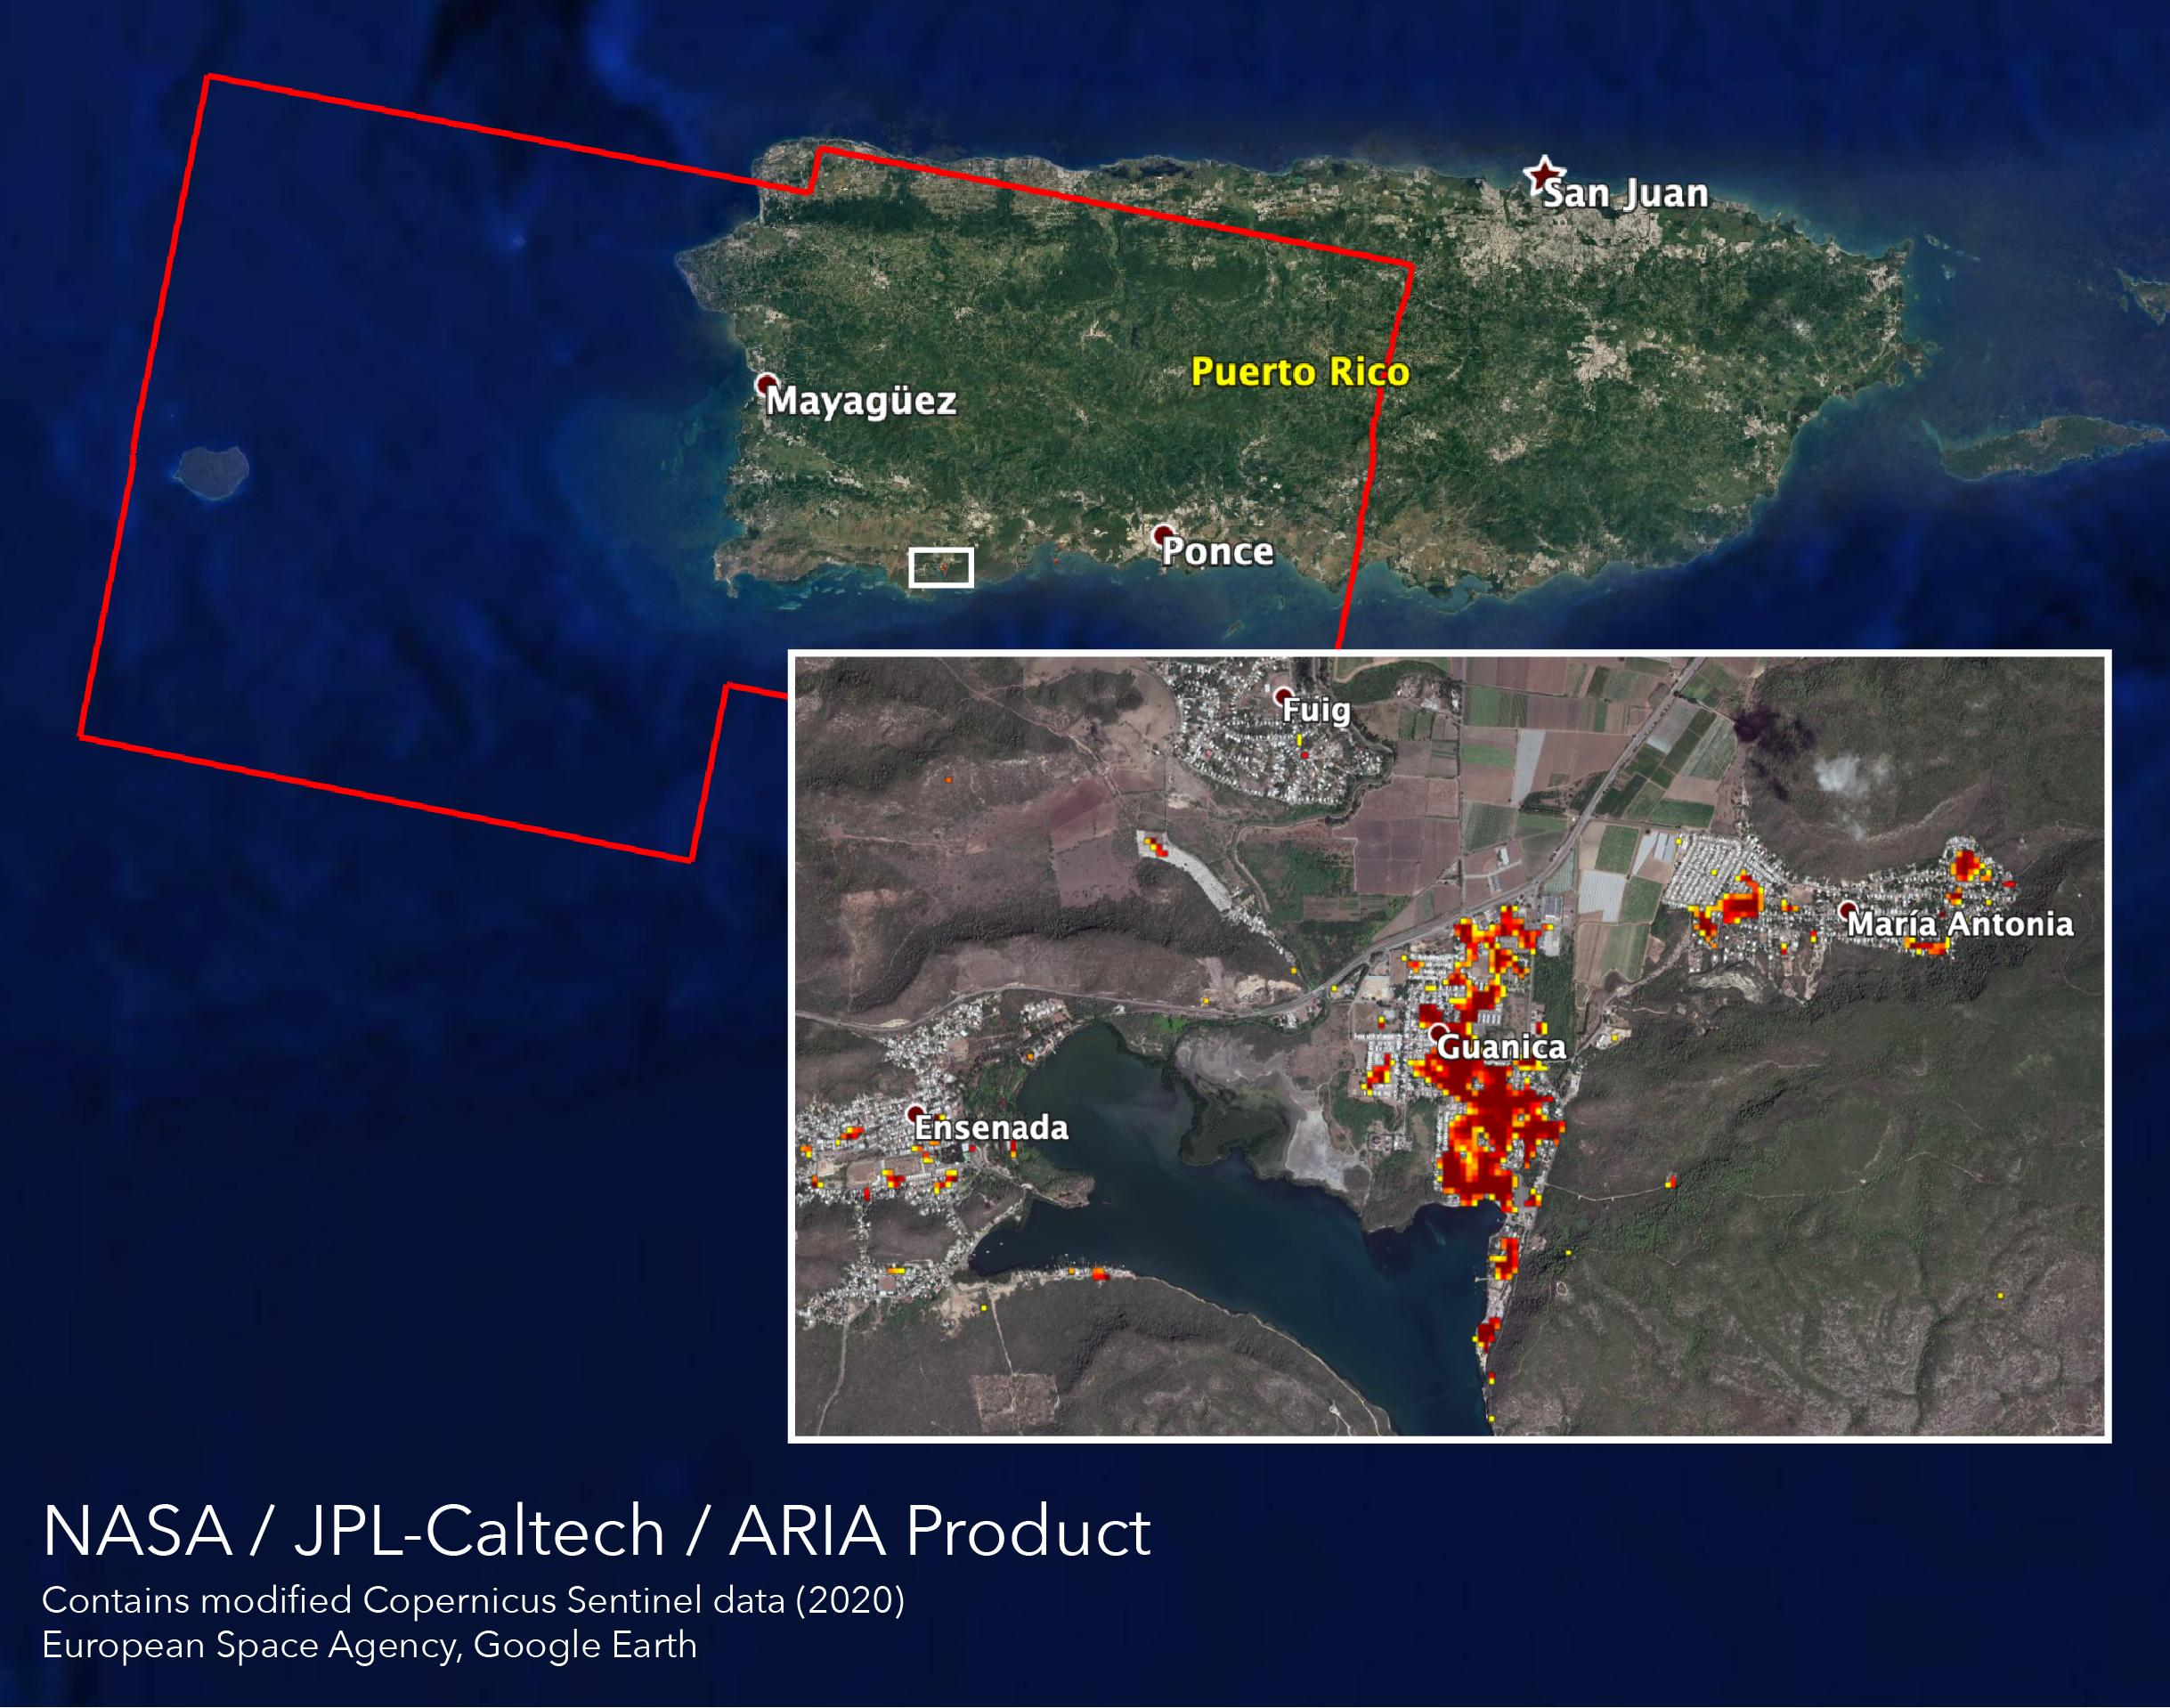 NASAs ARIA team mapped damage in southwestern Puerto Rico following a 6.4-magnitude quake and hundreds of aftershocks. Guanica, west of the city of Ponce, was particularly hard-hit.